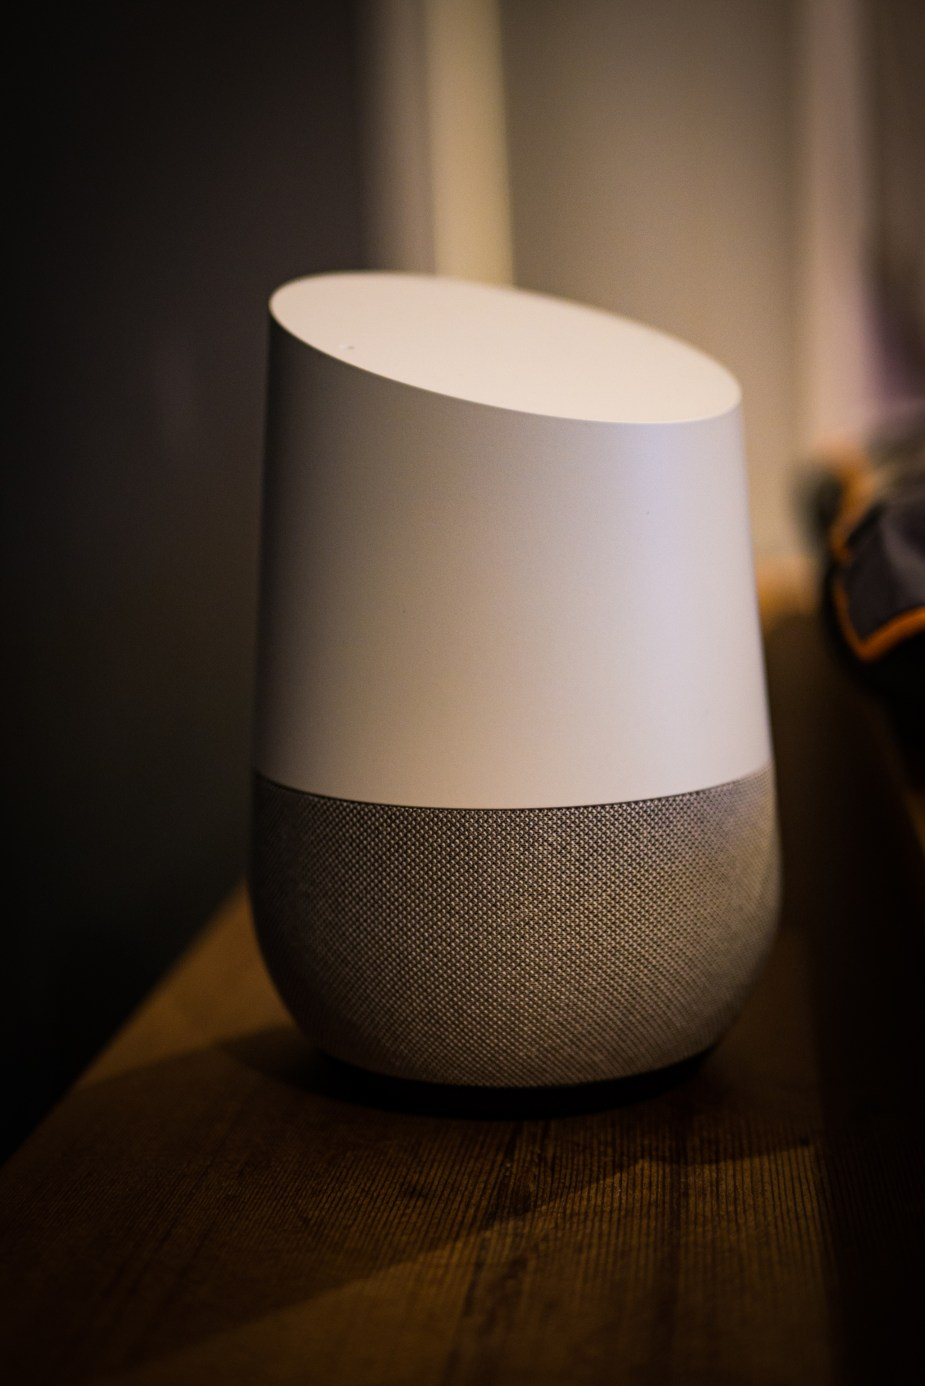 Google Home (1 of 3)